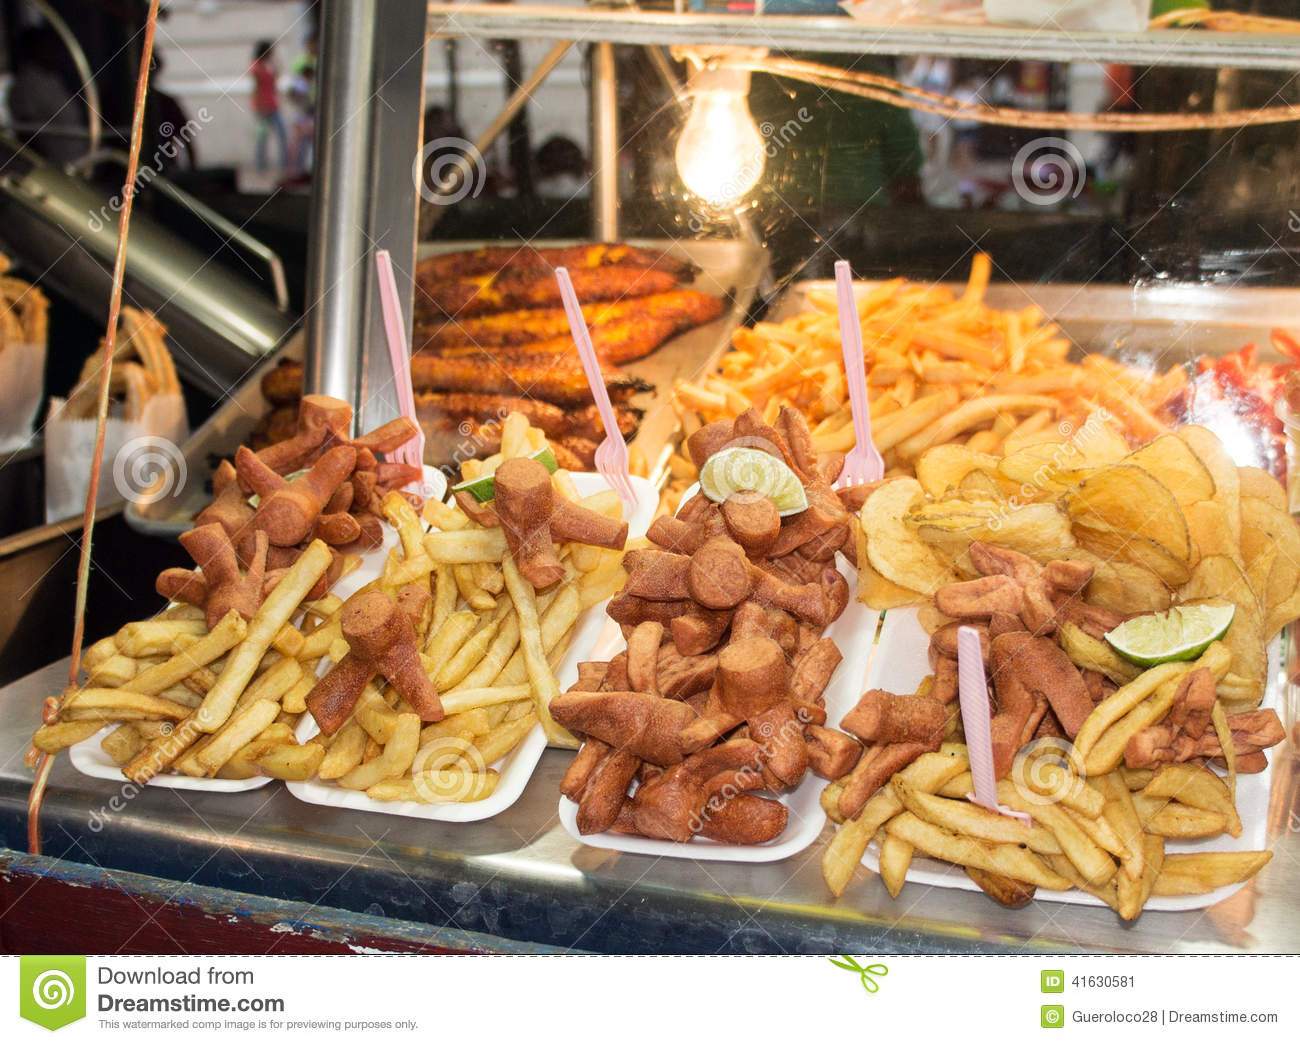 Greasy Street Food Of Hotdogs And French Fries Stock Photo ...